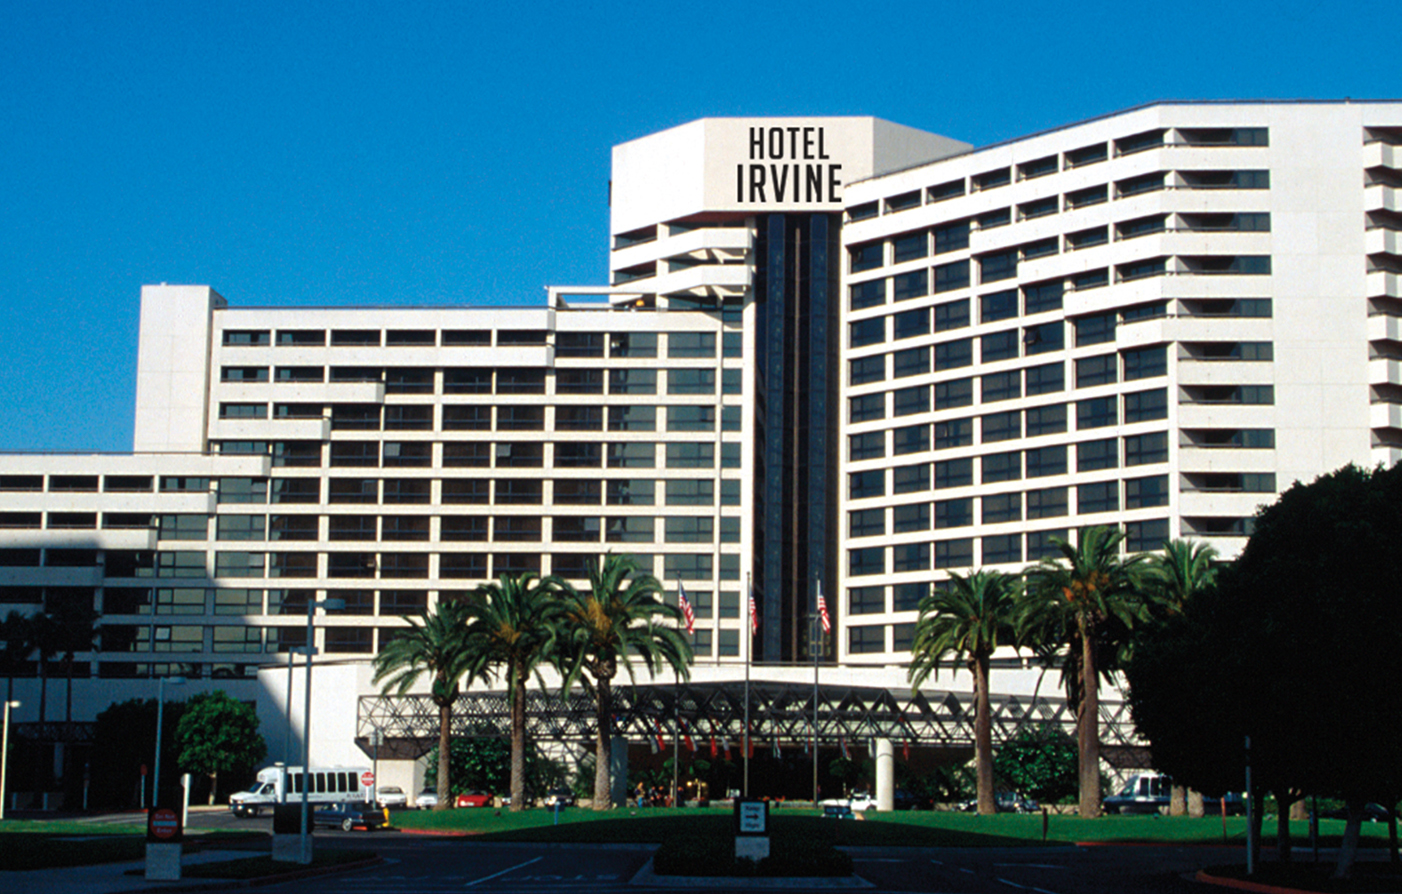 Directions To Homewood Suites Irvine Hotel Near Airport